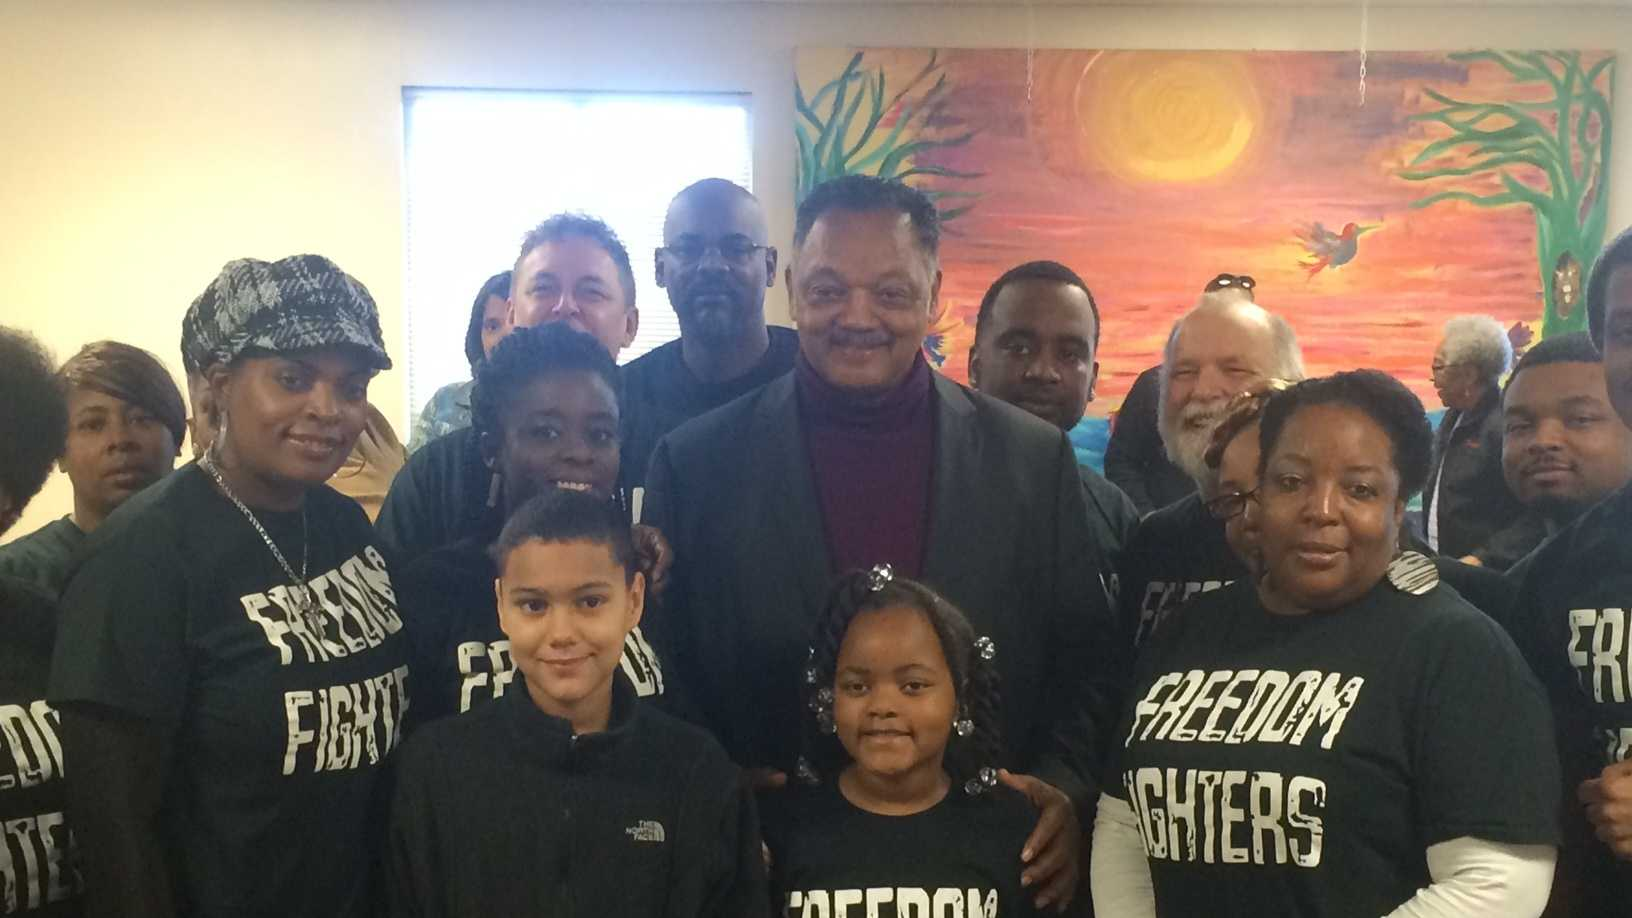 Rev. Jesse Jackson holds press conference with local groups to push voter registration.